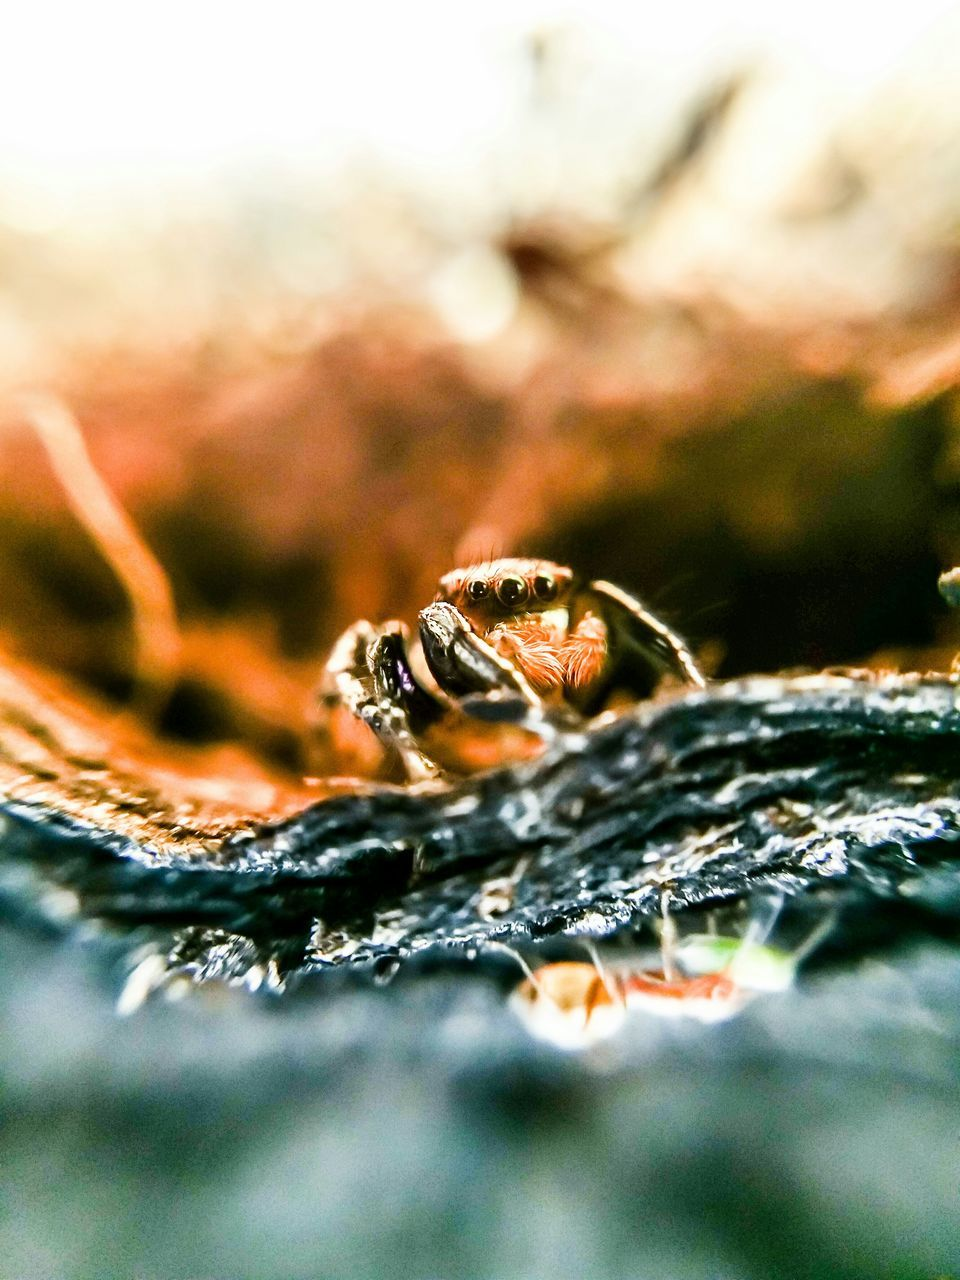 selective focus, one animal, close-up, animal themes, animals in the wild, spider, no people, nature, jumping spider, day, outdoors, animal wildlife, water, beauty in nature